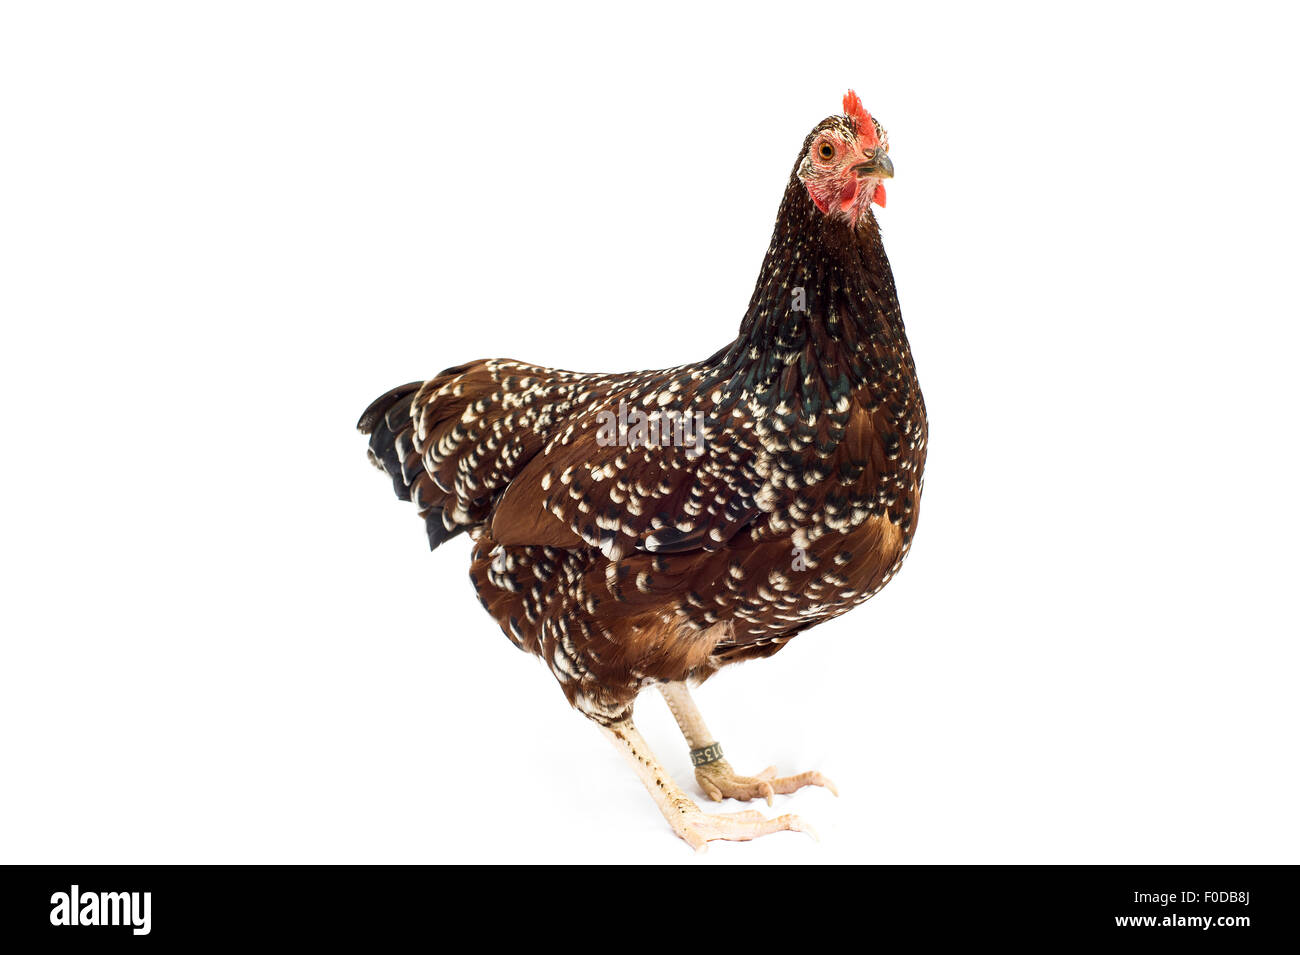 Sussex-Huhn-Rasse Stockbild